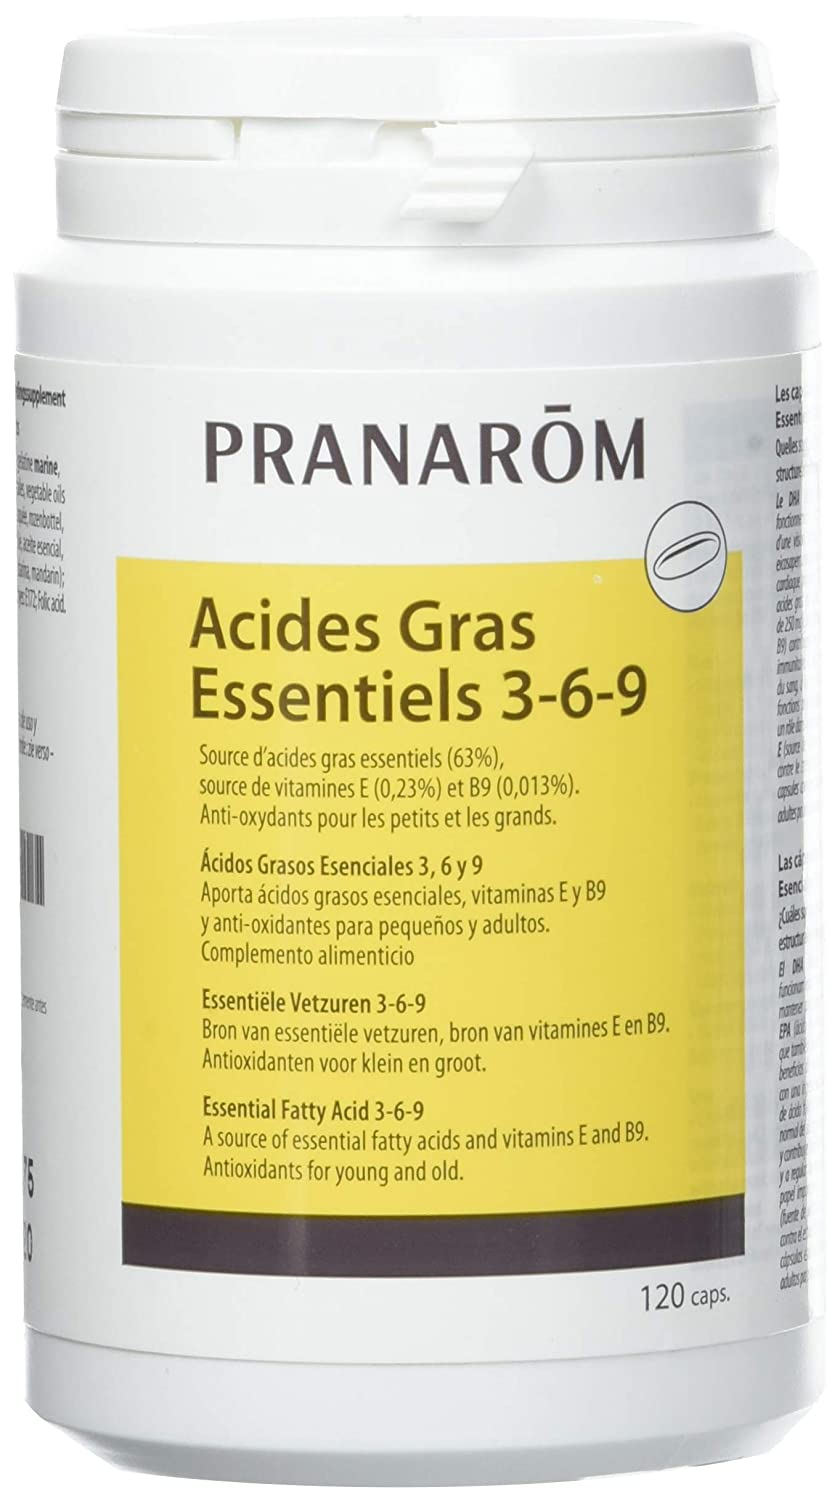 Amazon.com: Pranarôm Nature 3-6-9 Essential Fatty Acids 120 Capsules: Health & Personal Care